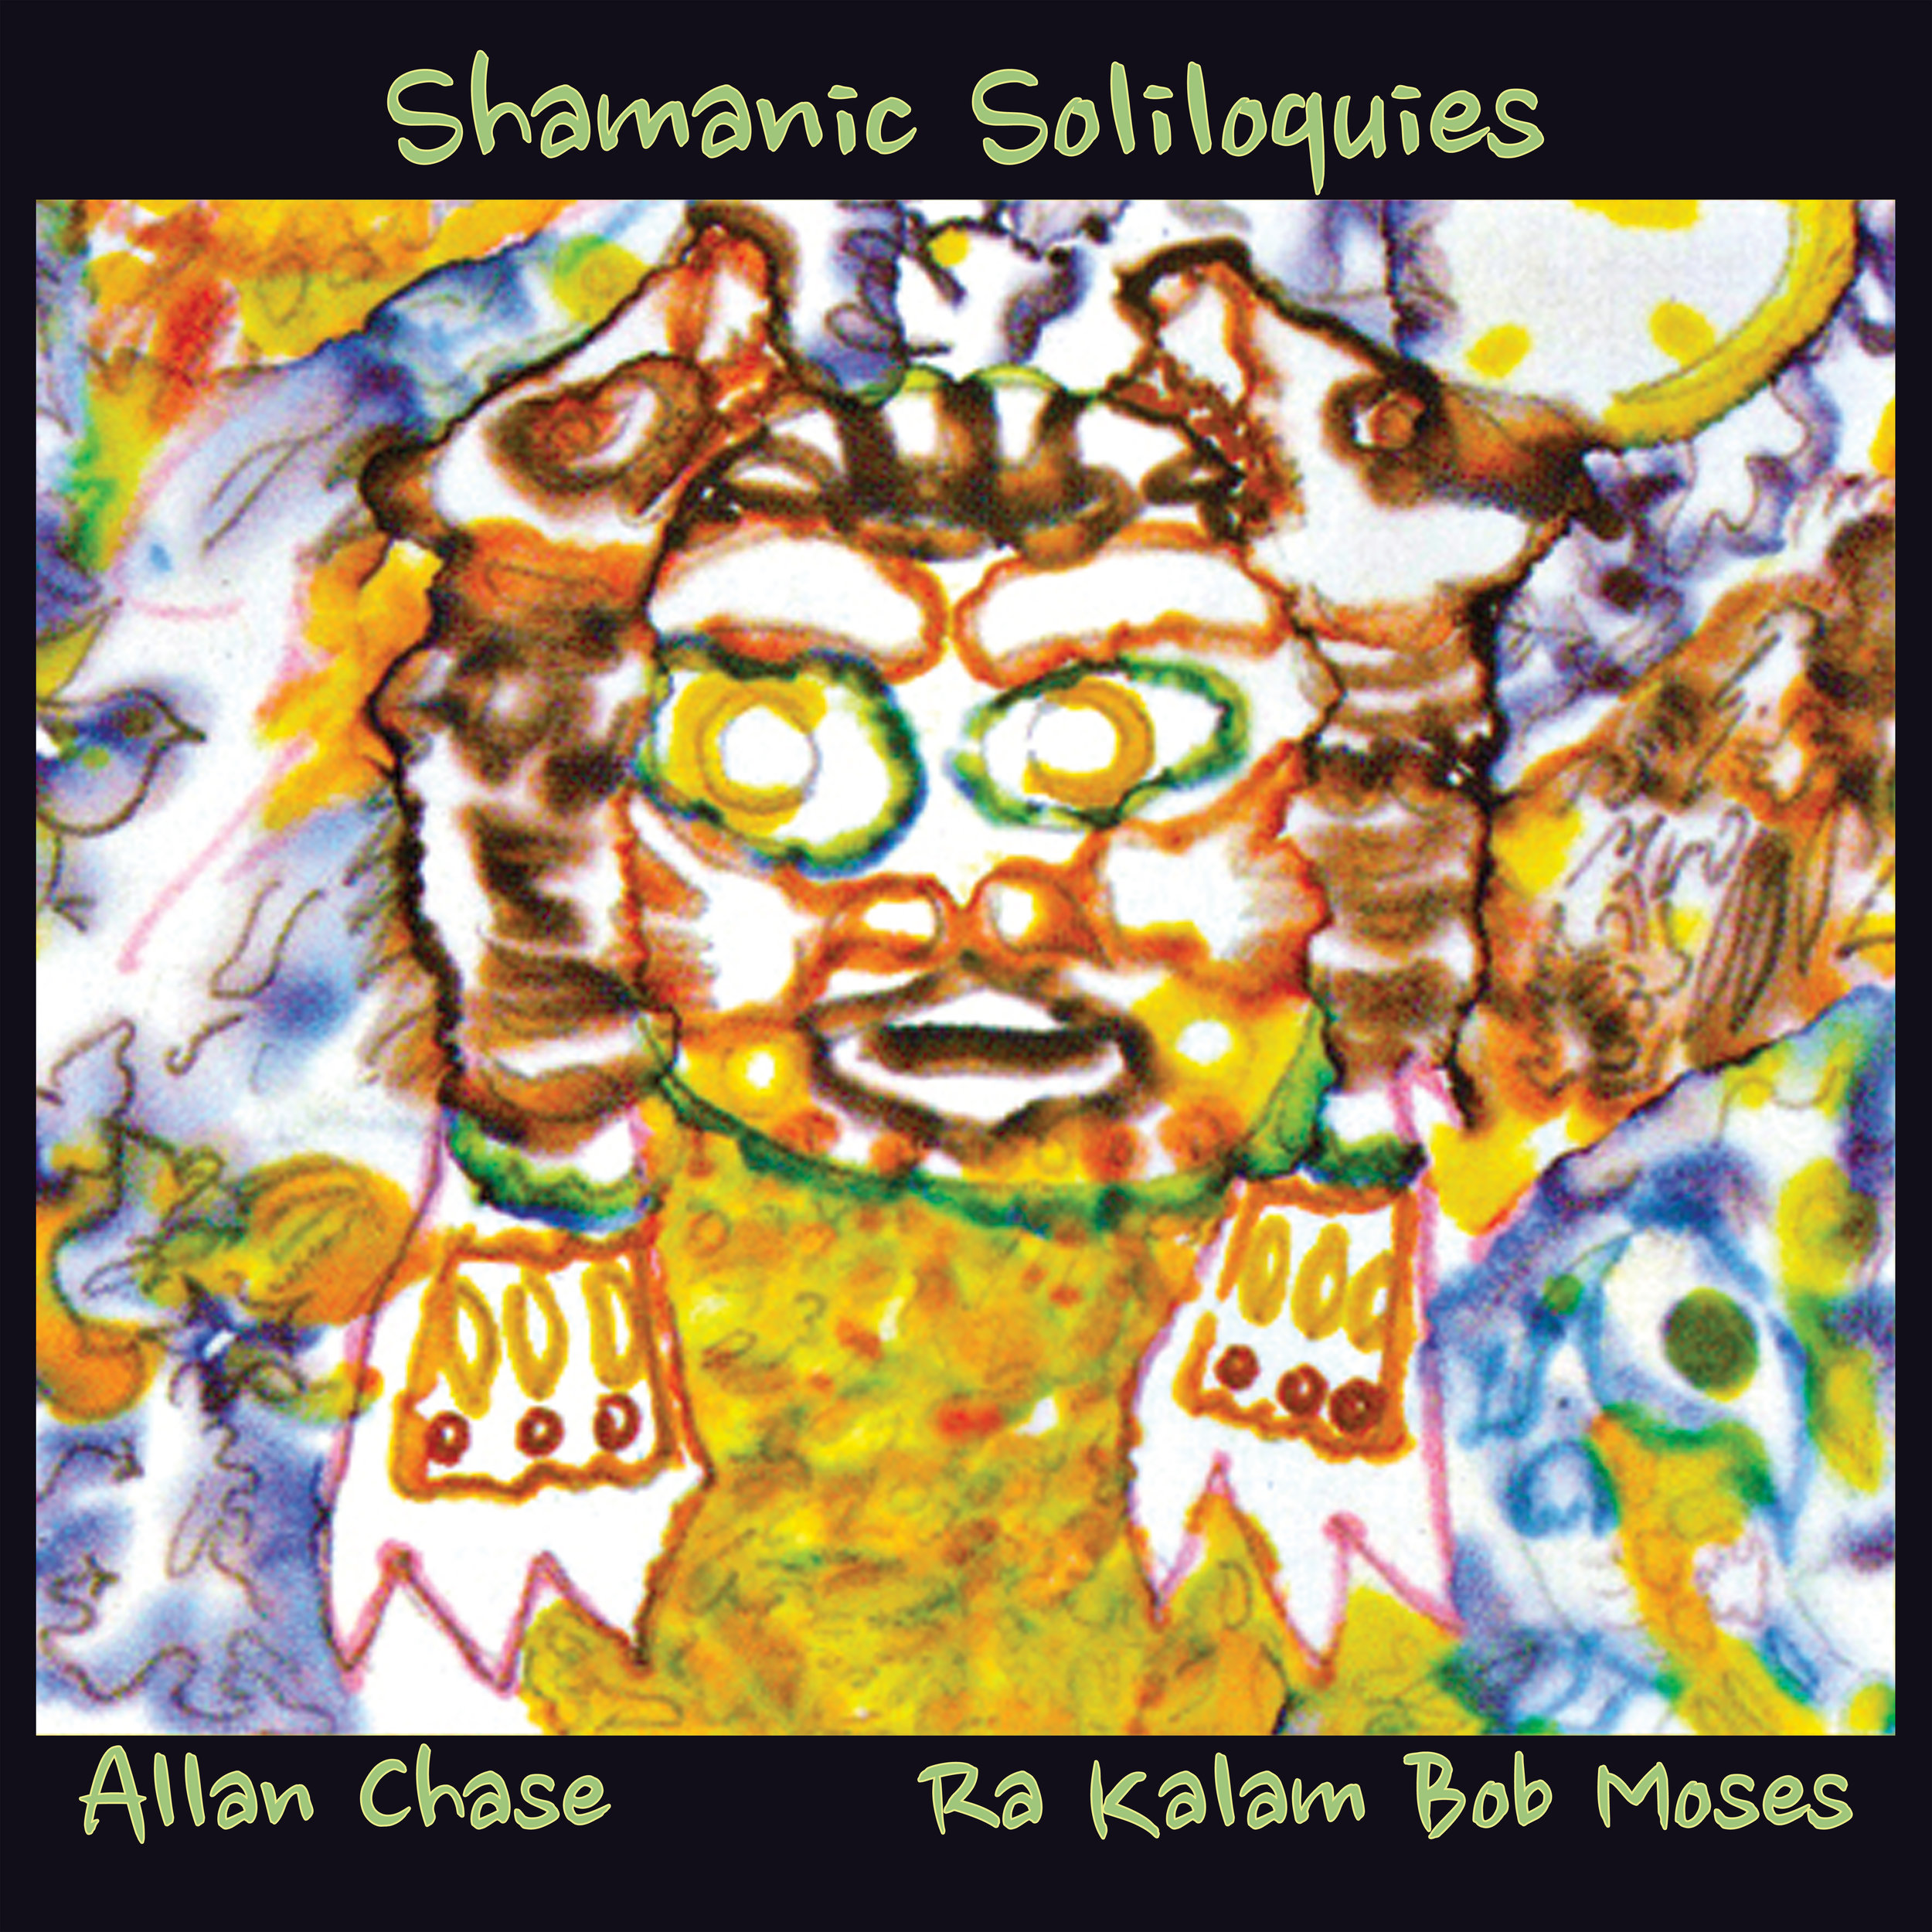 SHAMANIC SOLILOQUIES    Compact Disc -    E-mail your order     Digital -    Amazon    -    iTunes     Release Date - 2018    Label - Ra Kalam Records    Allan Chase - Alto, soprano and baritone saxophones    Ra Kalam Bob Moses - Drums, djembe, talking drum, pans, kalimbas, spring drum, dumbek, bendir, buzz sticks, bass and vocals       SAMPLE